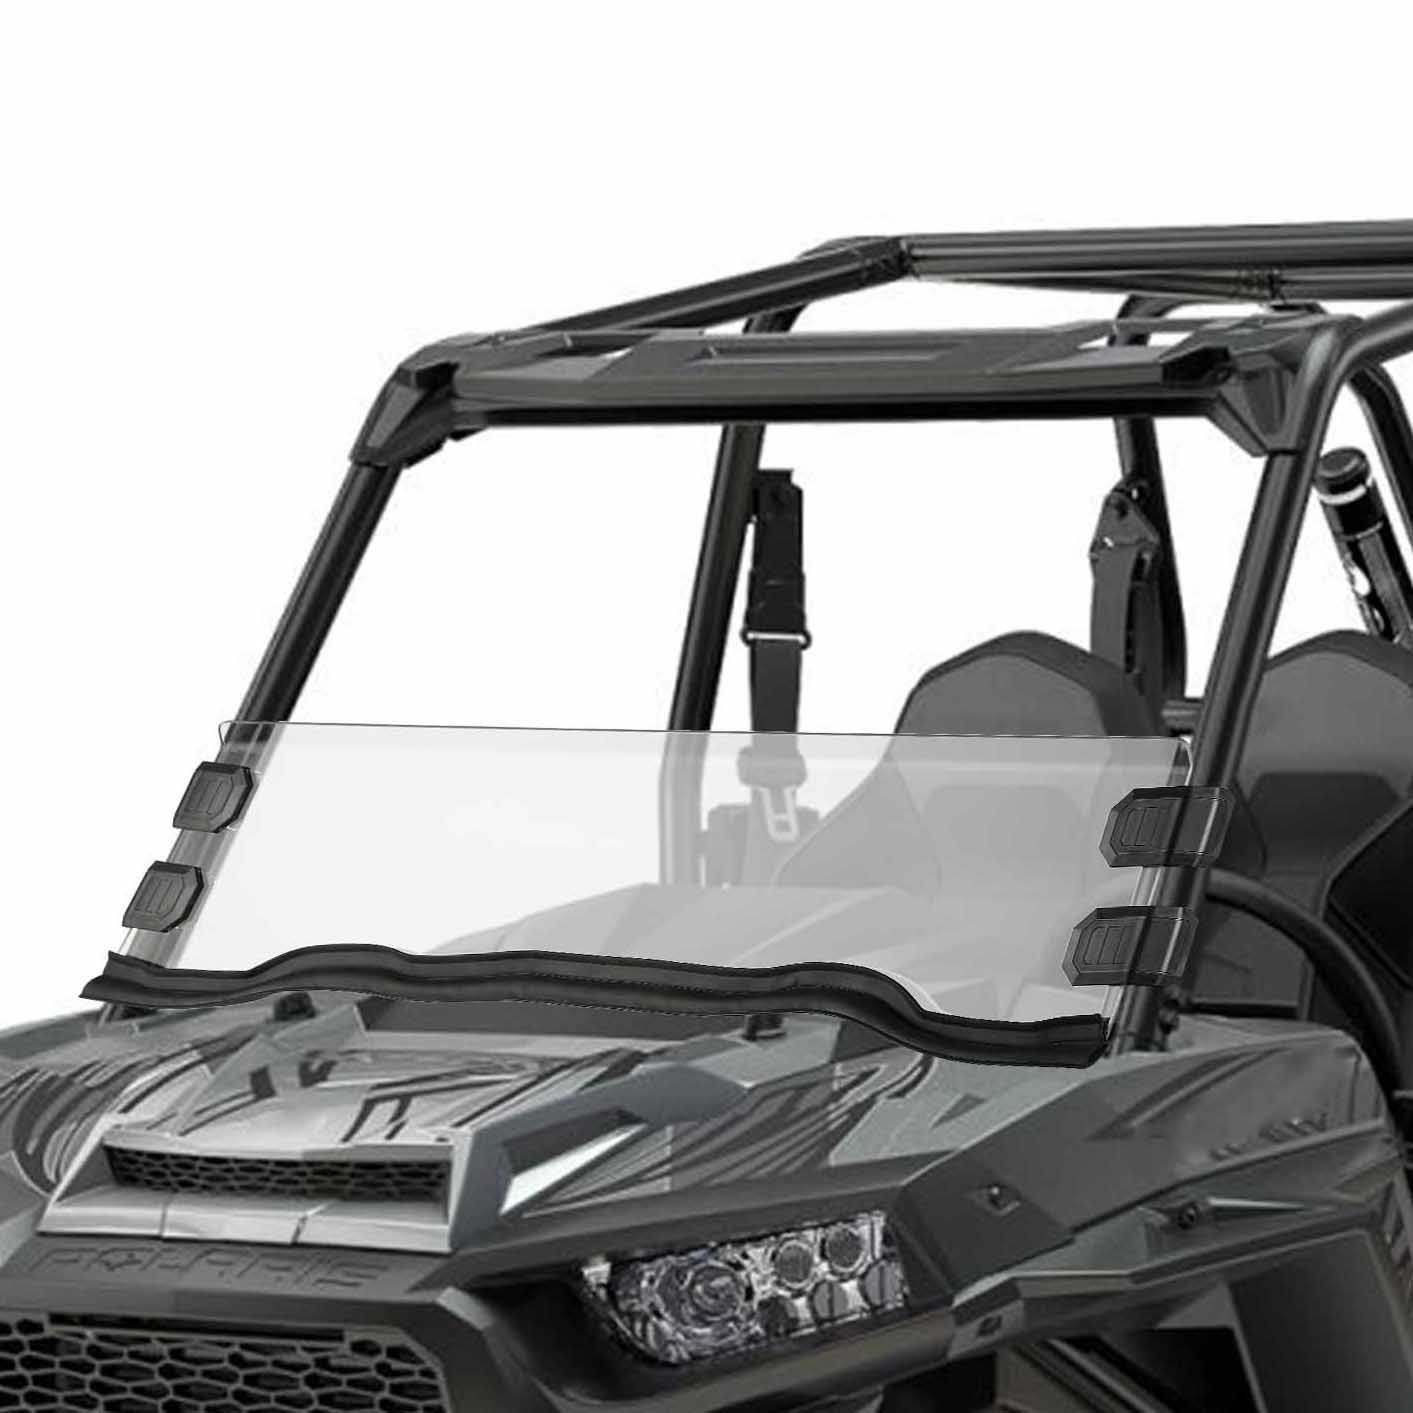 Polaris Razor UTV Half Windshield for 15-18 RZR 900, 15-18 RZR 4 900, 15-18 RZR S 900, 15-18 RZR XC 900, 14-18 RZR 1000, 16-18 RZR S 1000, 16-18 RZR XP Turbo, 14-18 RZR 4 1000